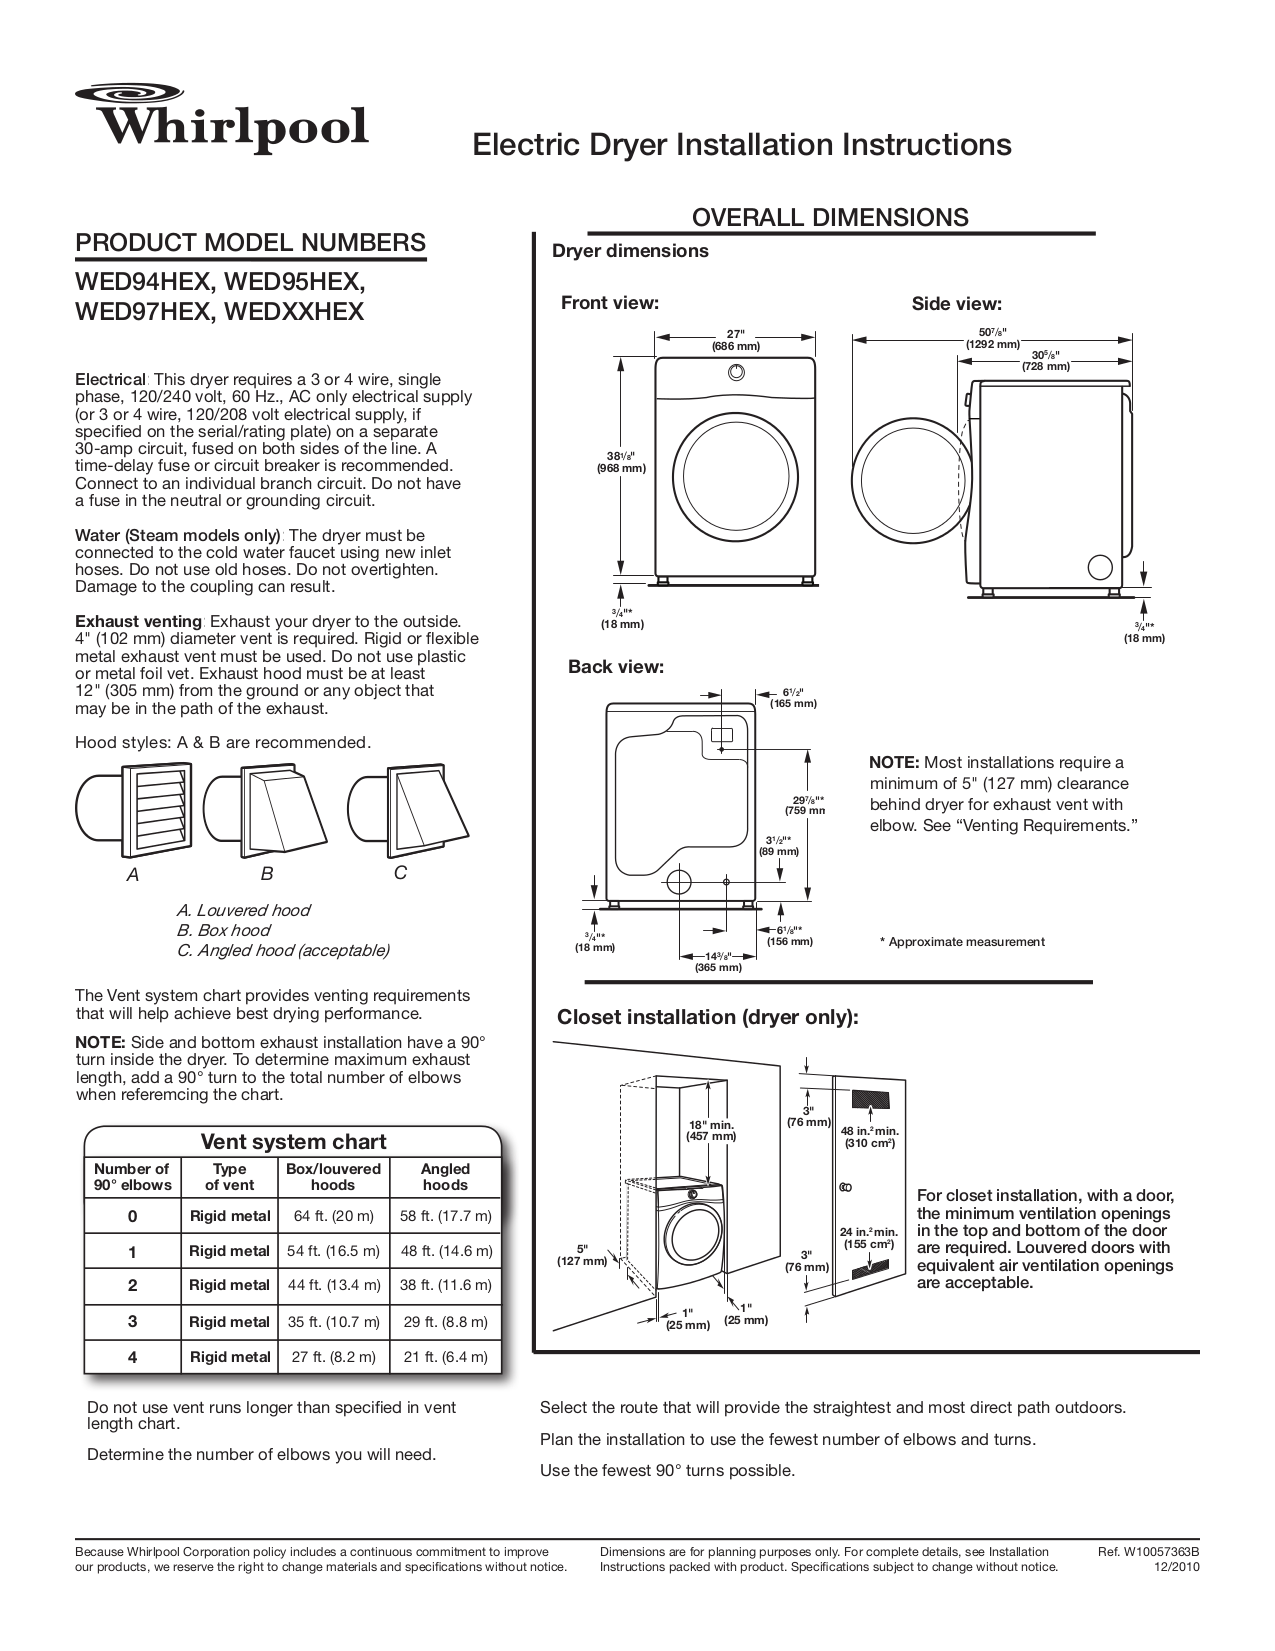 Whirlpool Dryer Diagrams Whirlpool Free Download Wiring Diagram – Wiring Diagram Whirlpool Dryer